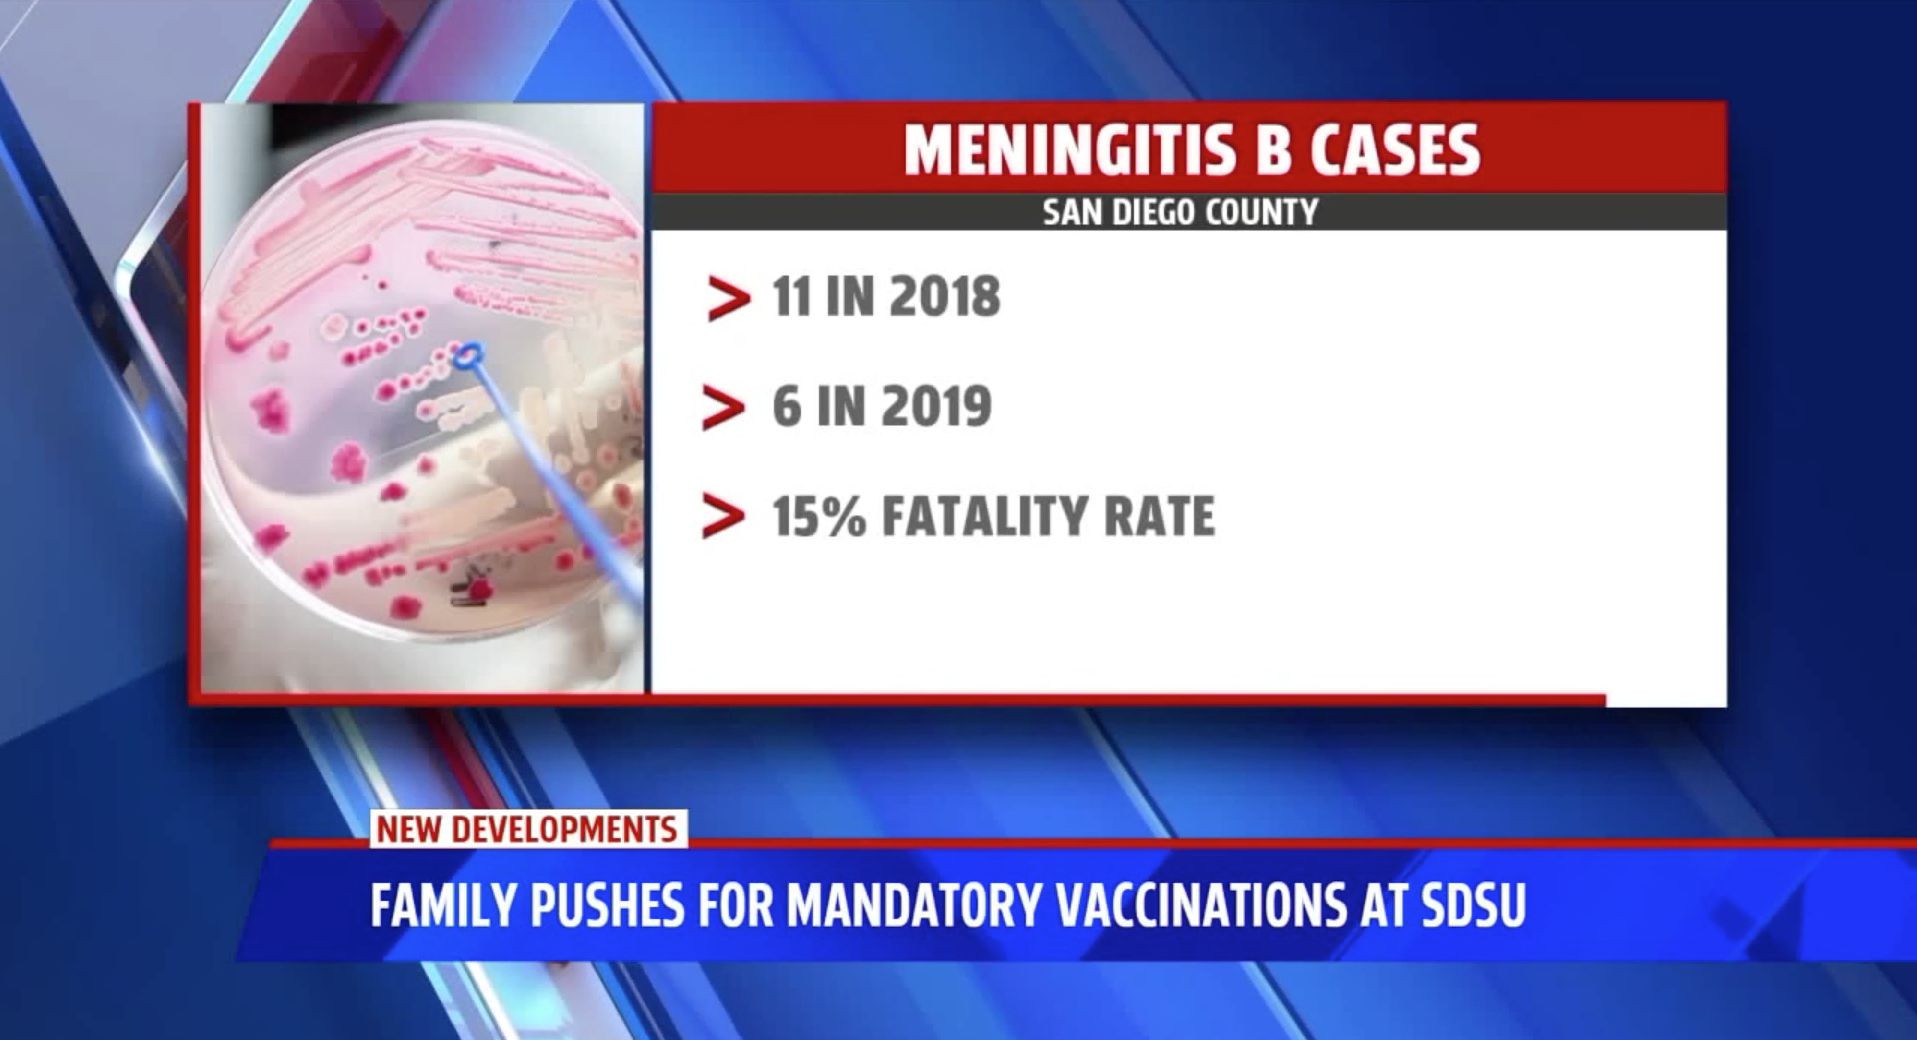 """According to the university, about 9,000 students have been vaccinated against meningococcal B to date."" -"